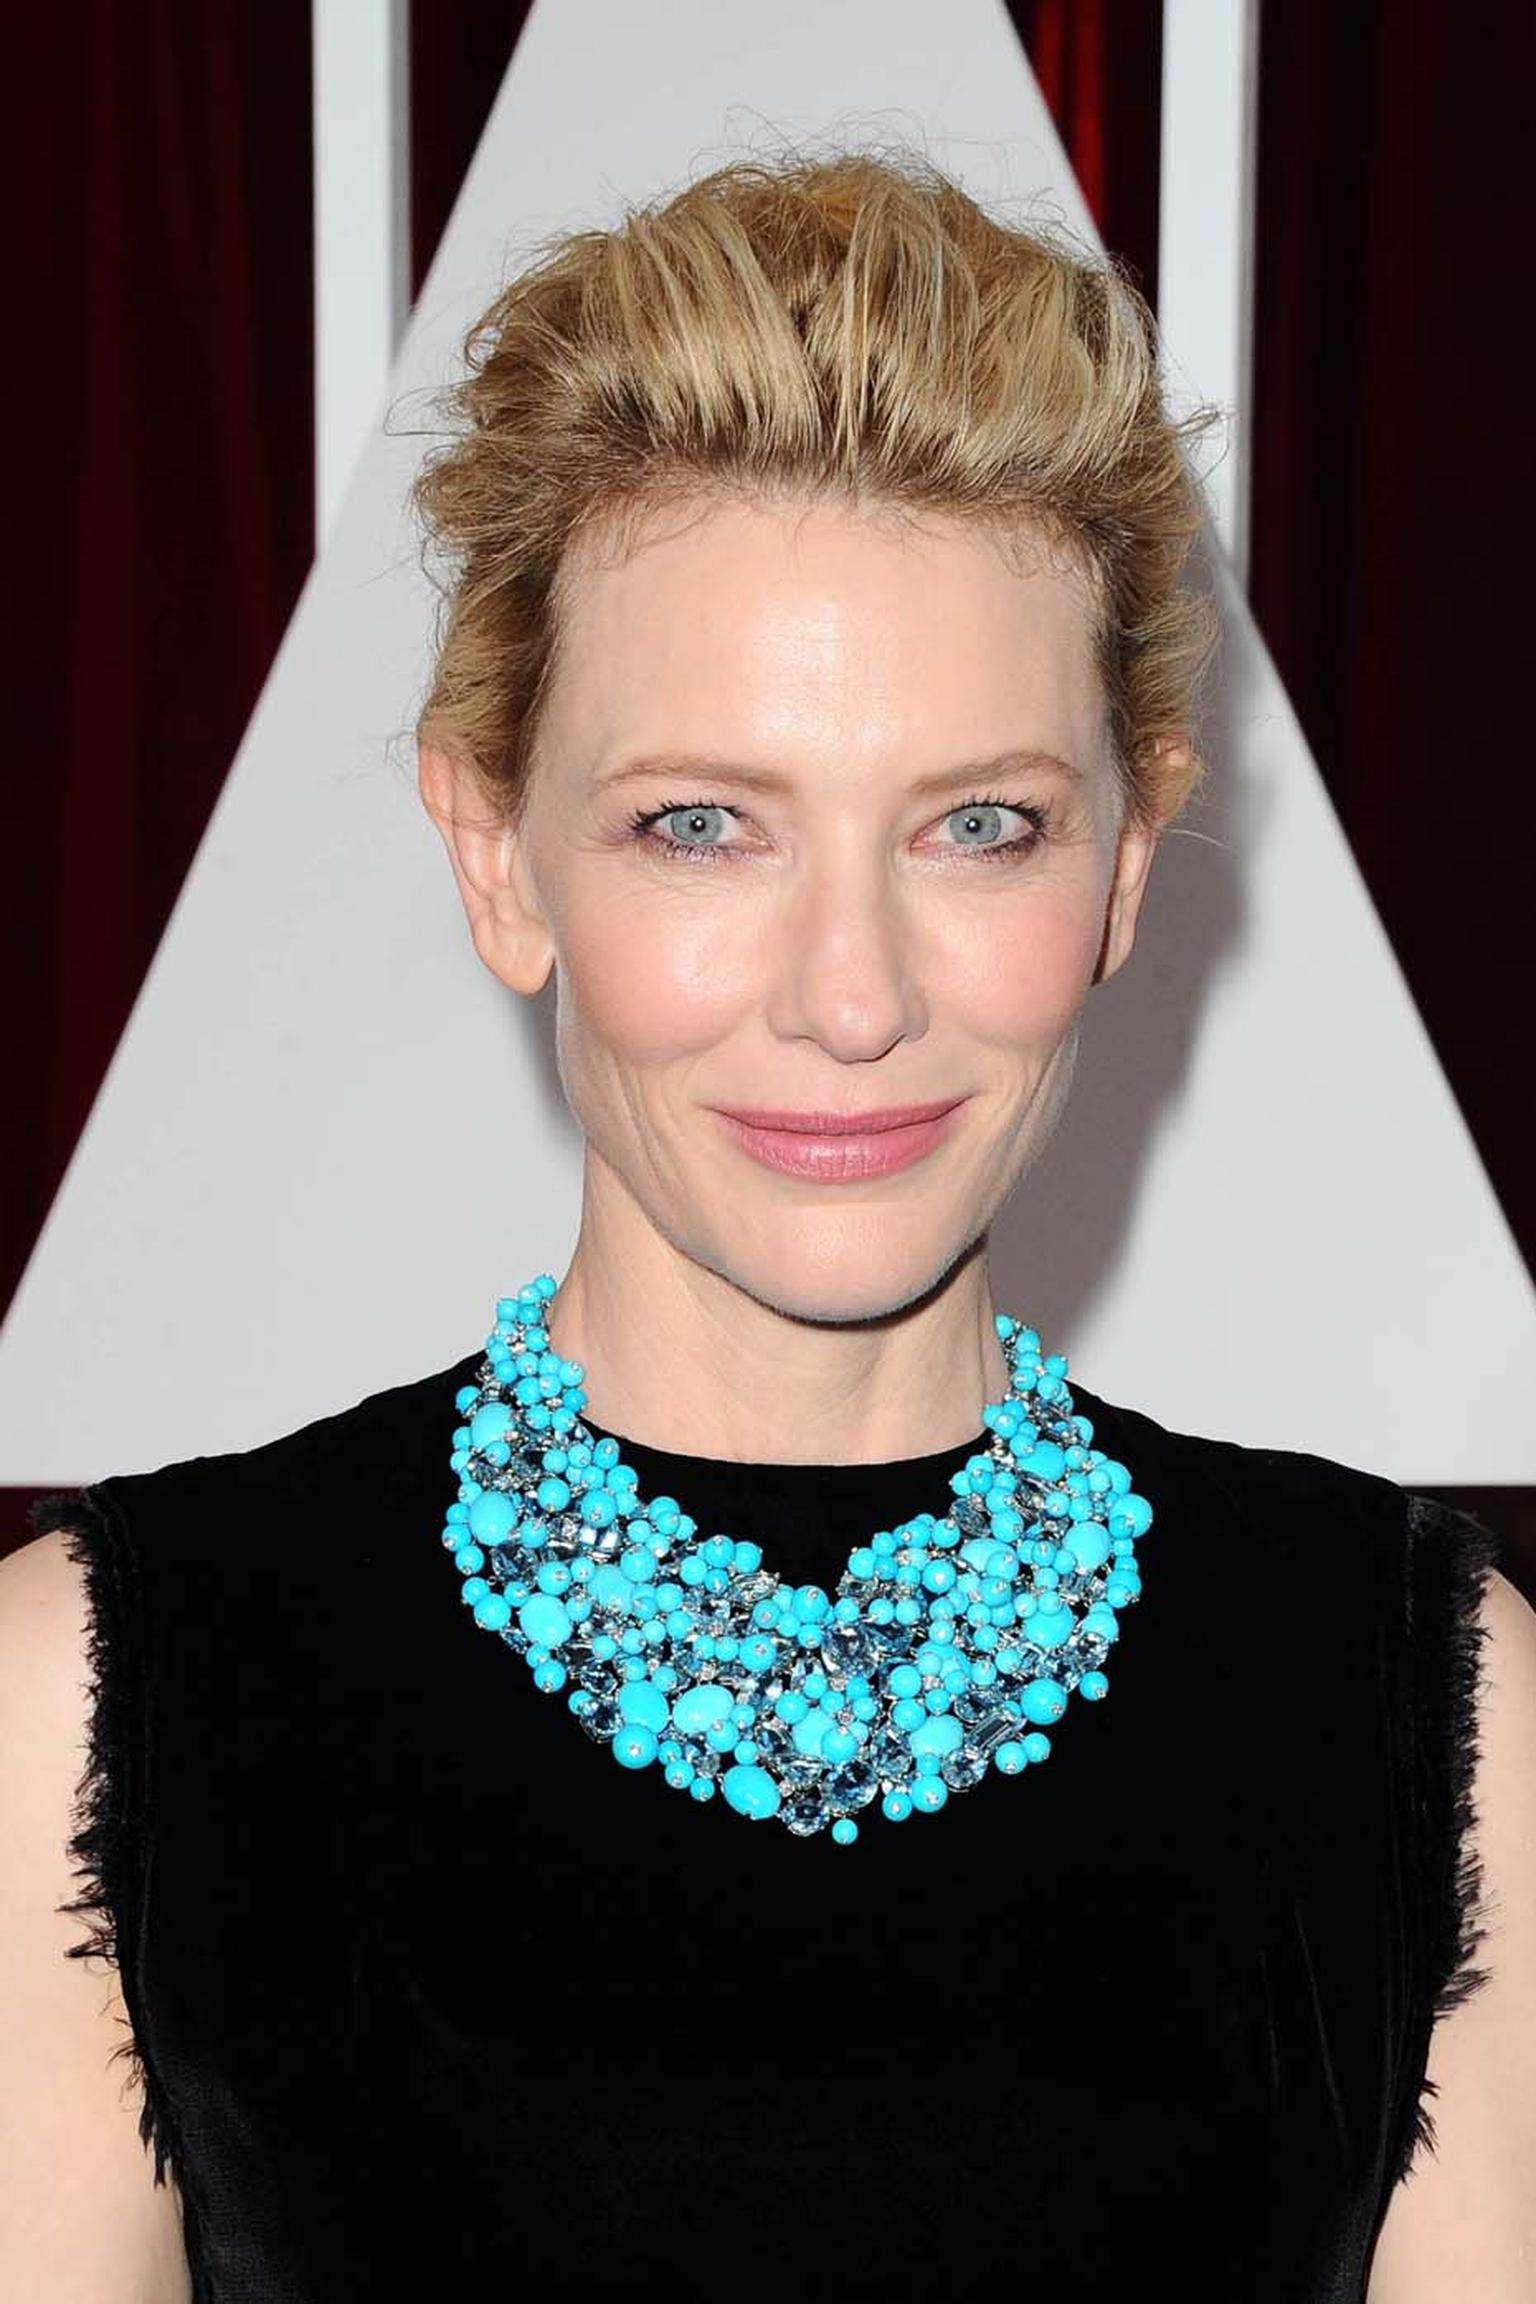 Actress Cate Blanchett's red carpet jewelry made one of the biggest statements of the night. She teamed her black Maison Margiela Couture gown with an outsized Tiffany bib of turquoise, aquamarine and diamonds.